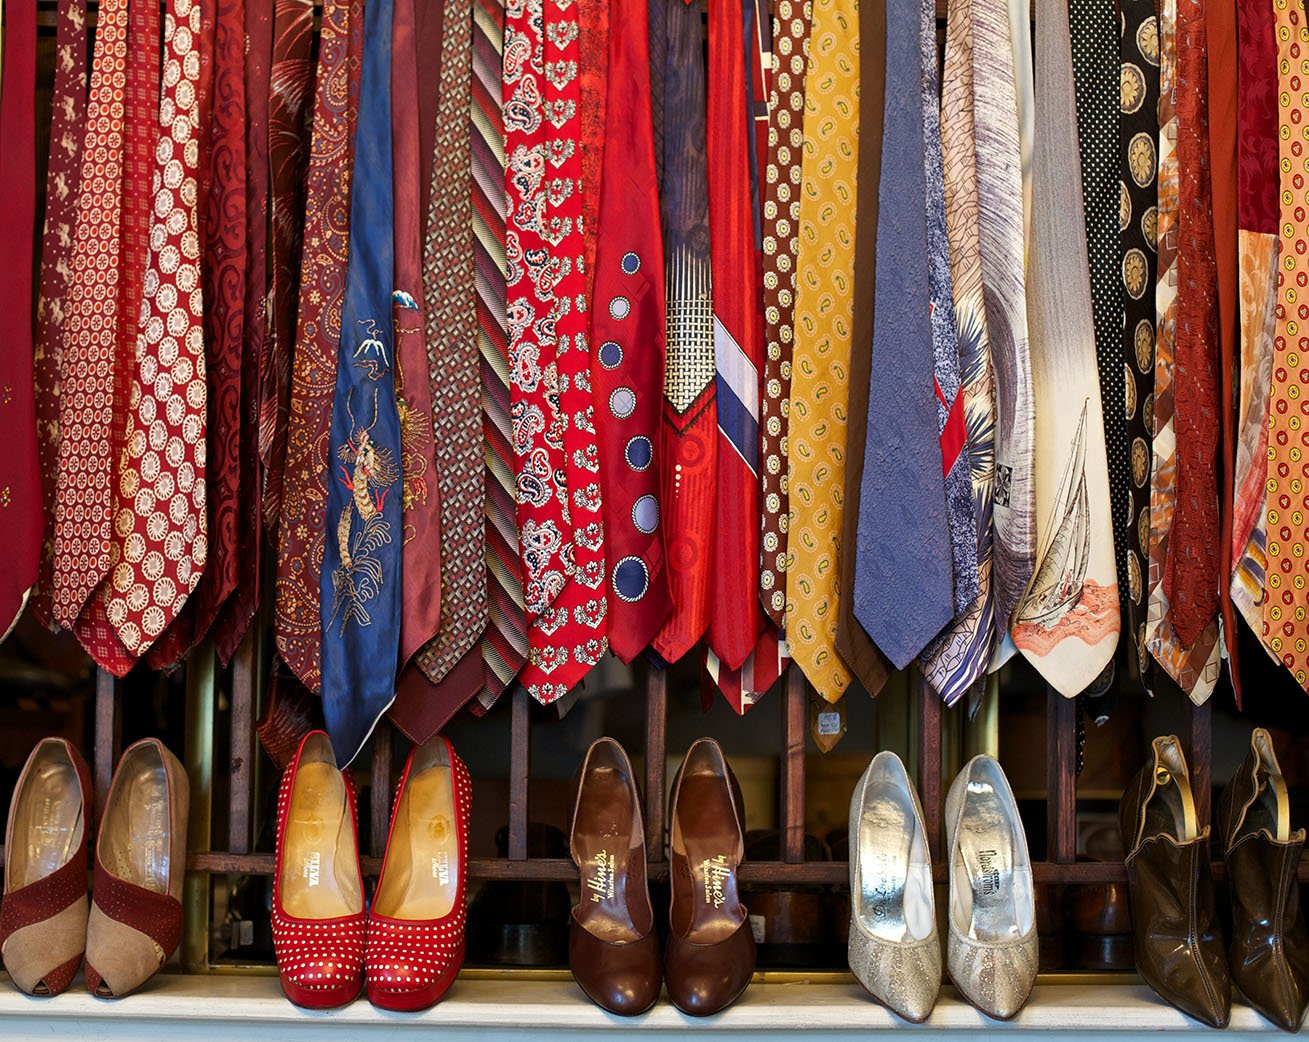 a collection of ties and hats at Hattie's Vintage in Southeast Portland